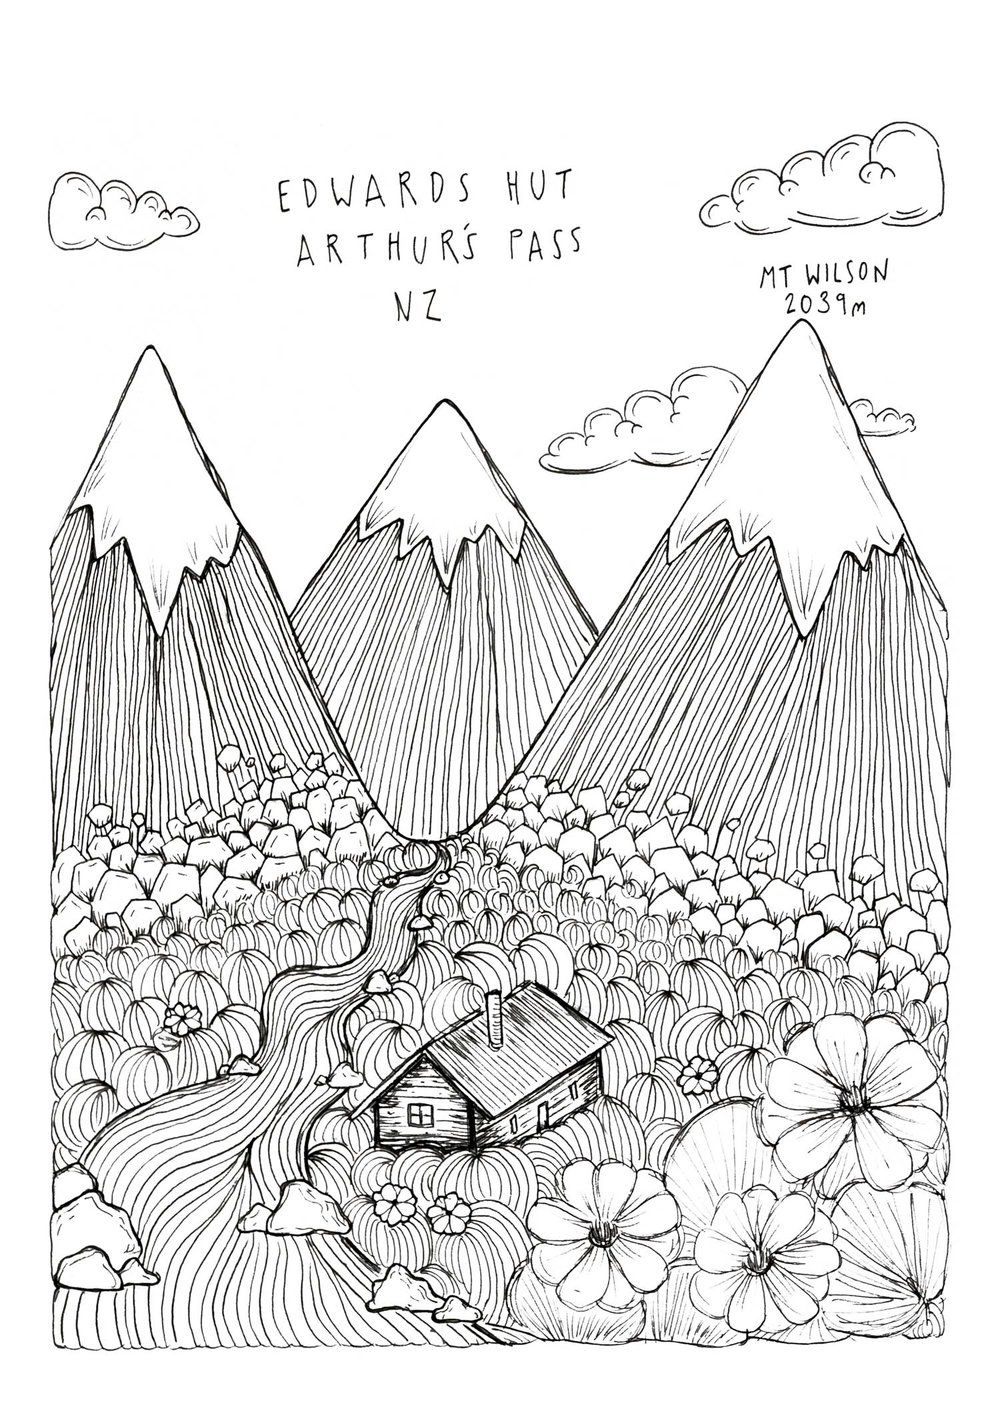 A doodle Soph did of the Edwards Hut.